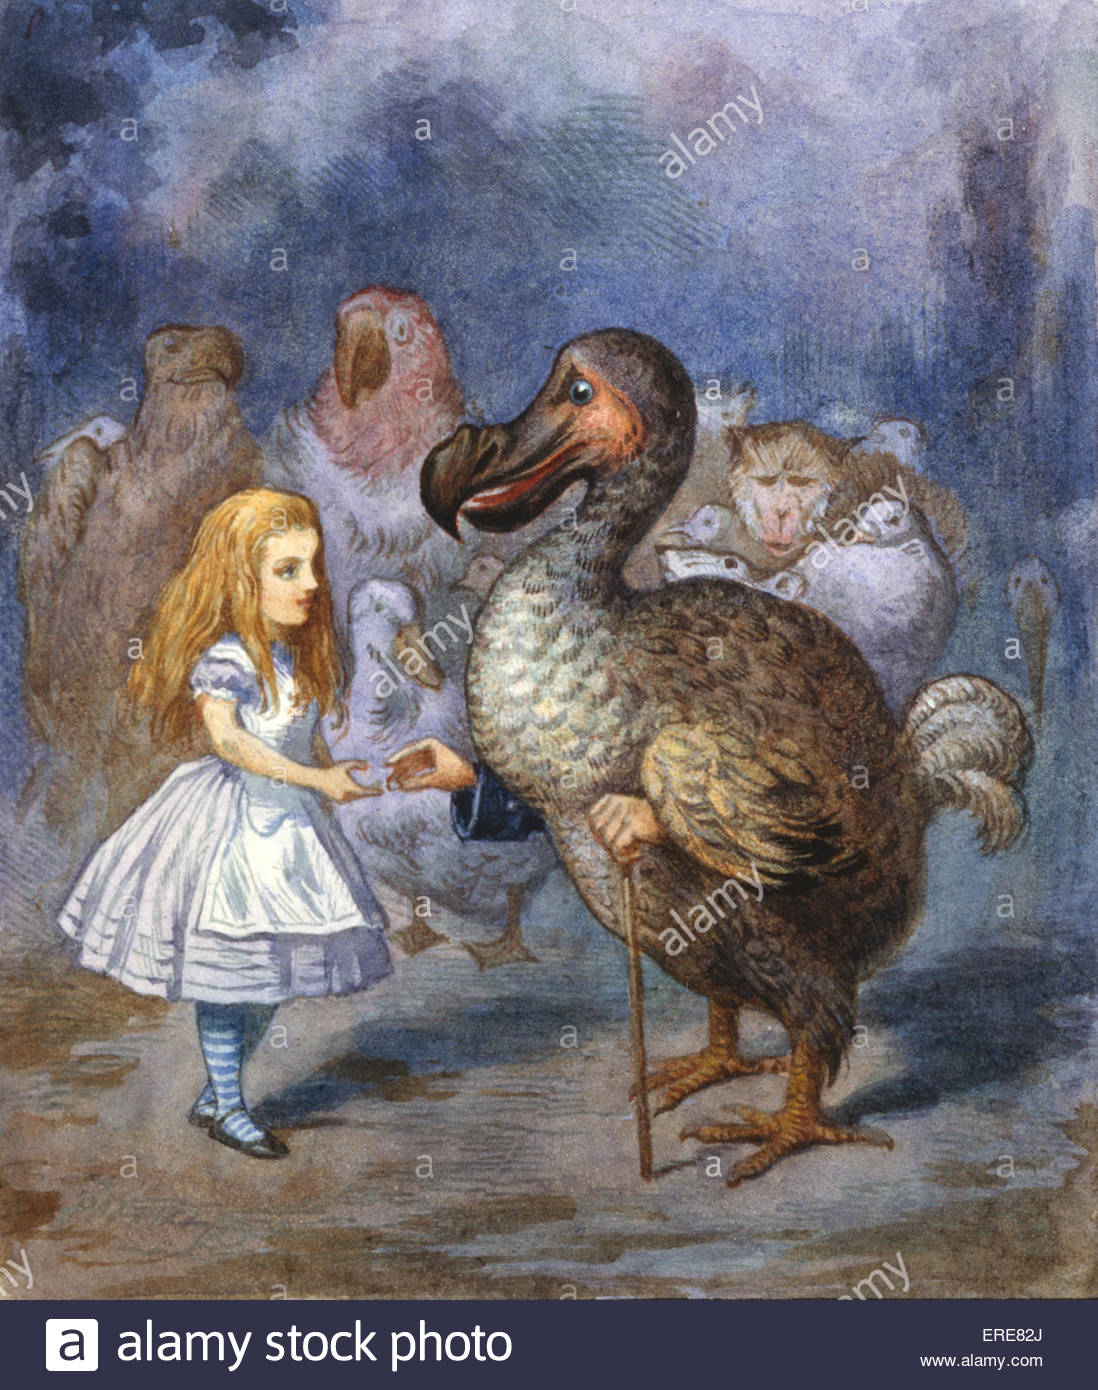 Alice And The Dodo, from Alice in Wonderland by Lewis Carroll (Charles Lutwidge Dodgson), English children's - Stock Image